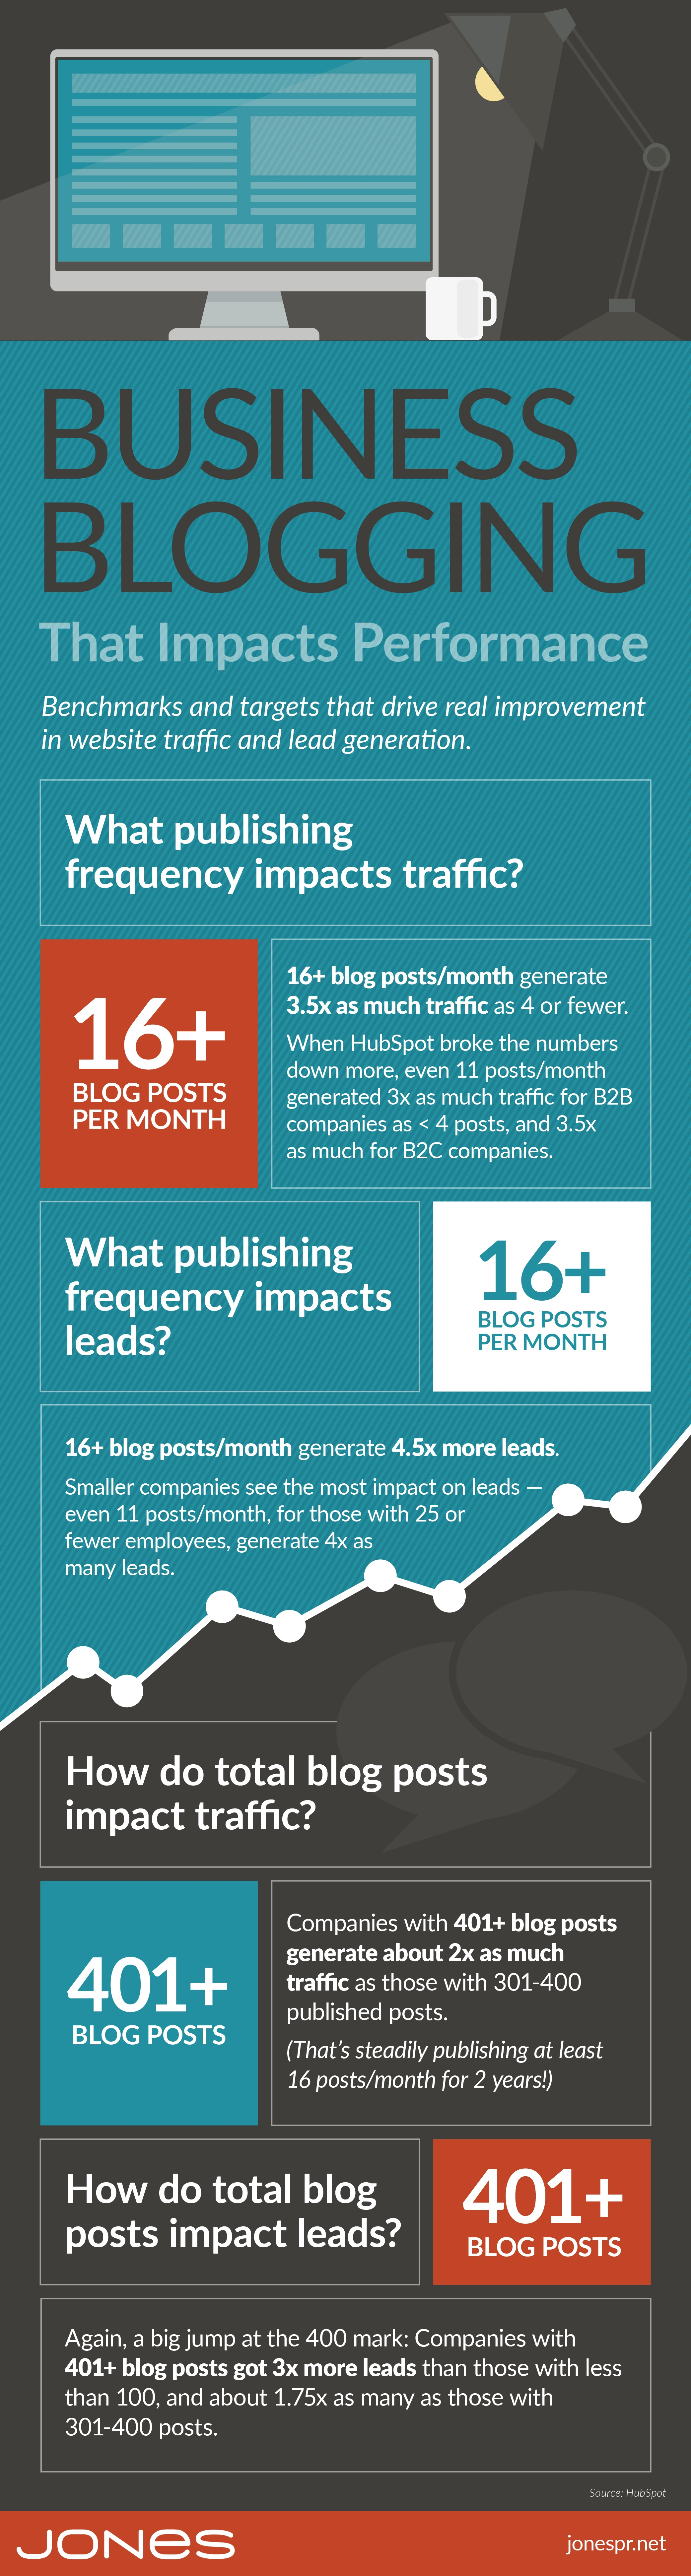 jones-infographic-business-blog-benchmarks-v2